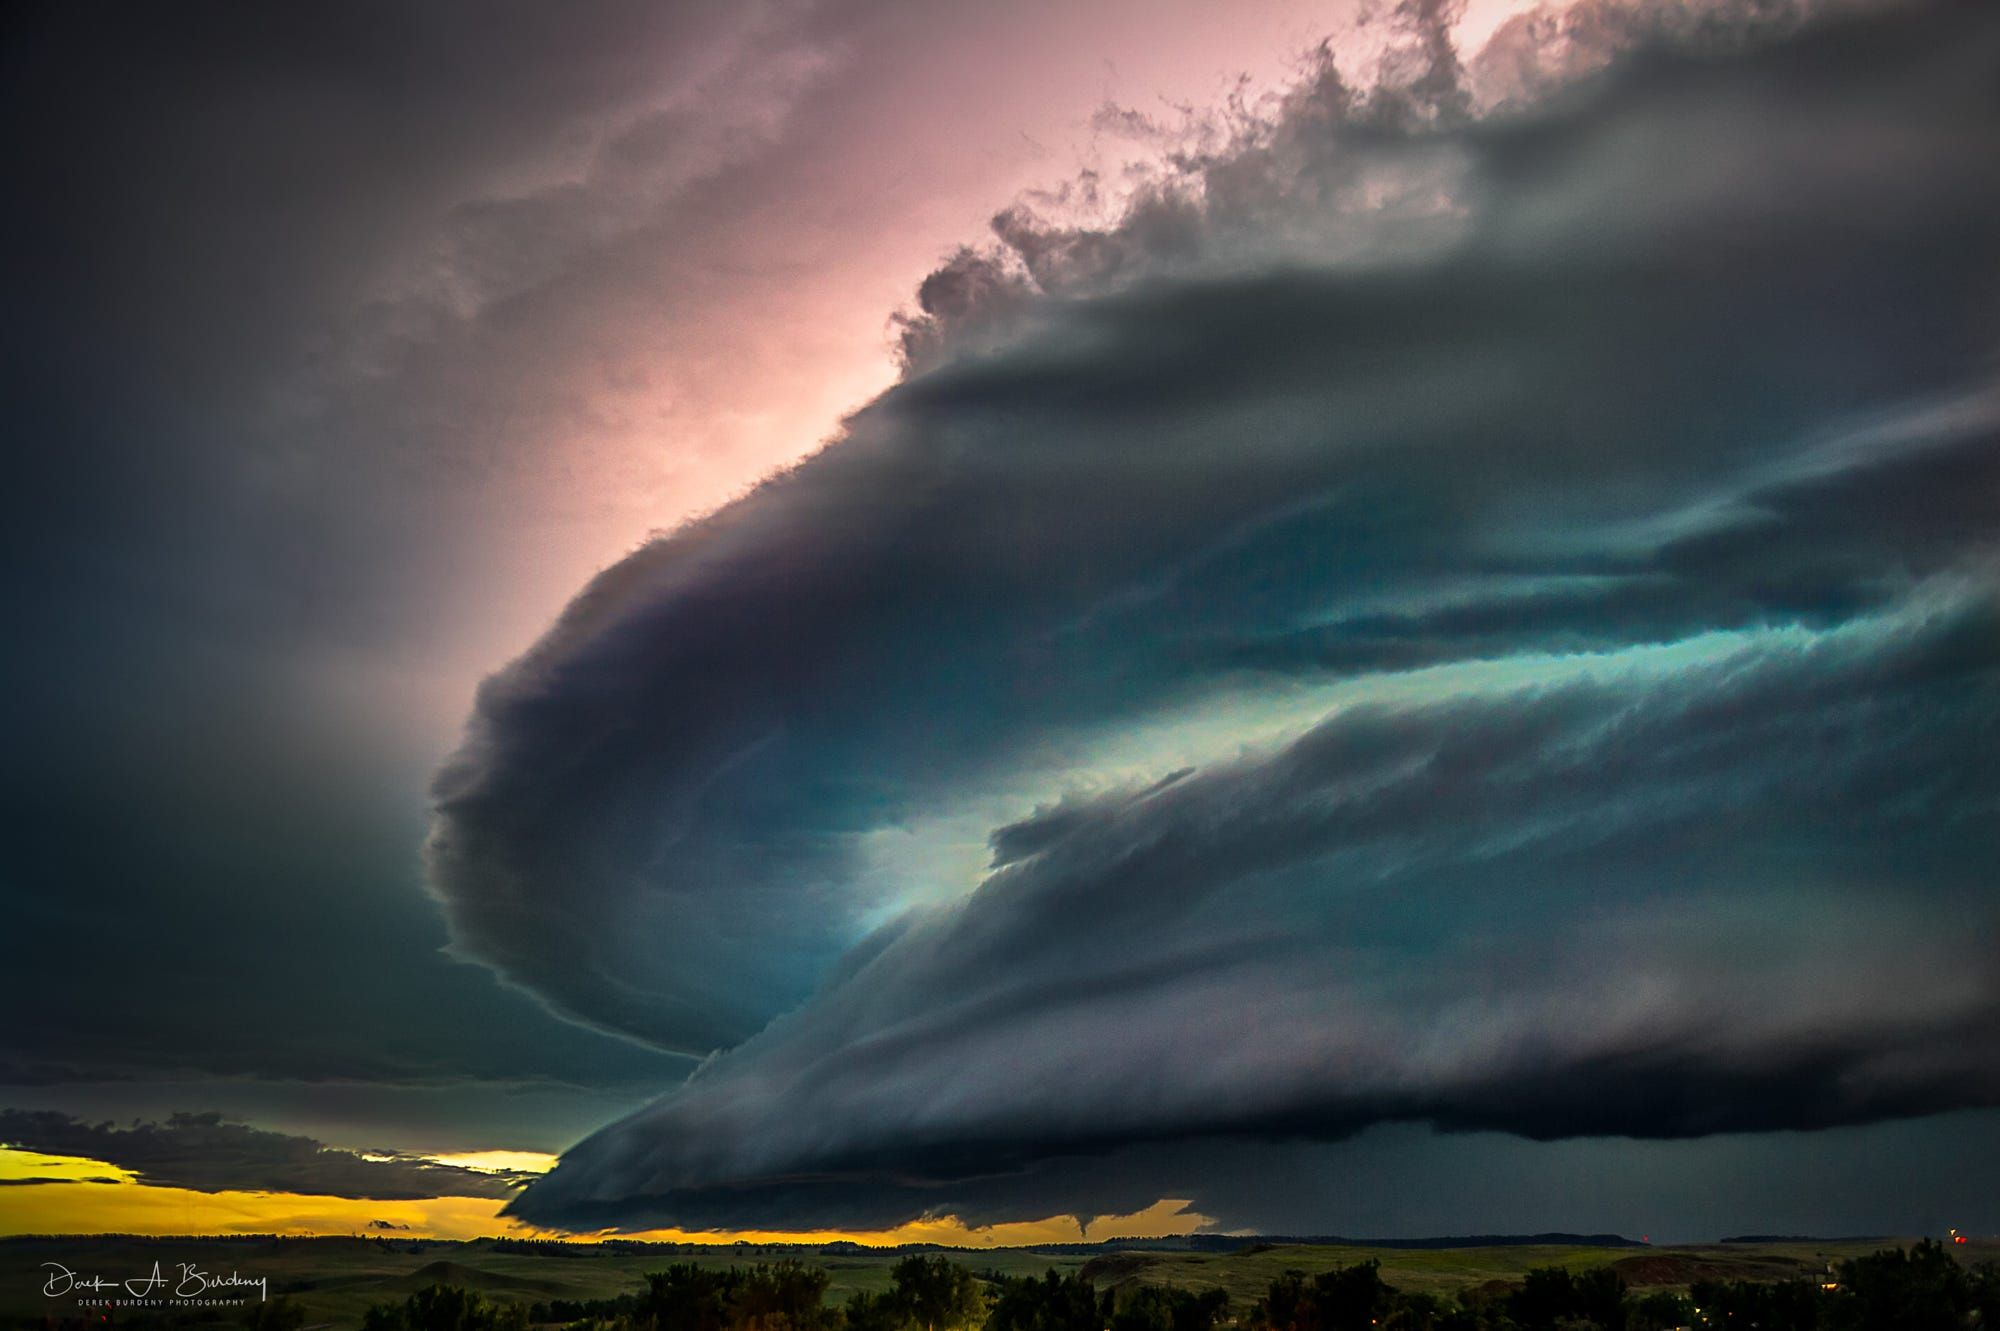 Mothership Supercell Thunderstorm With Distant Tornado